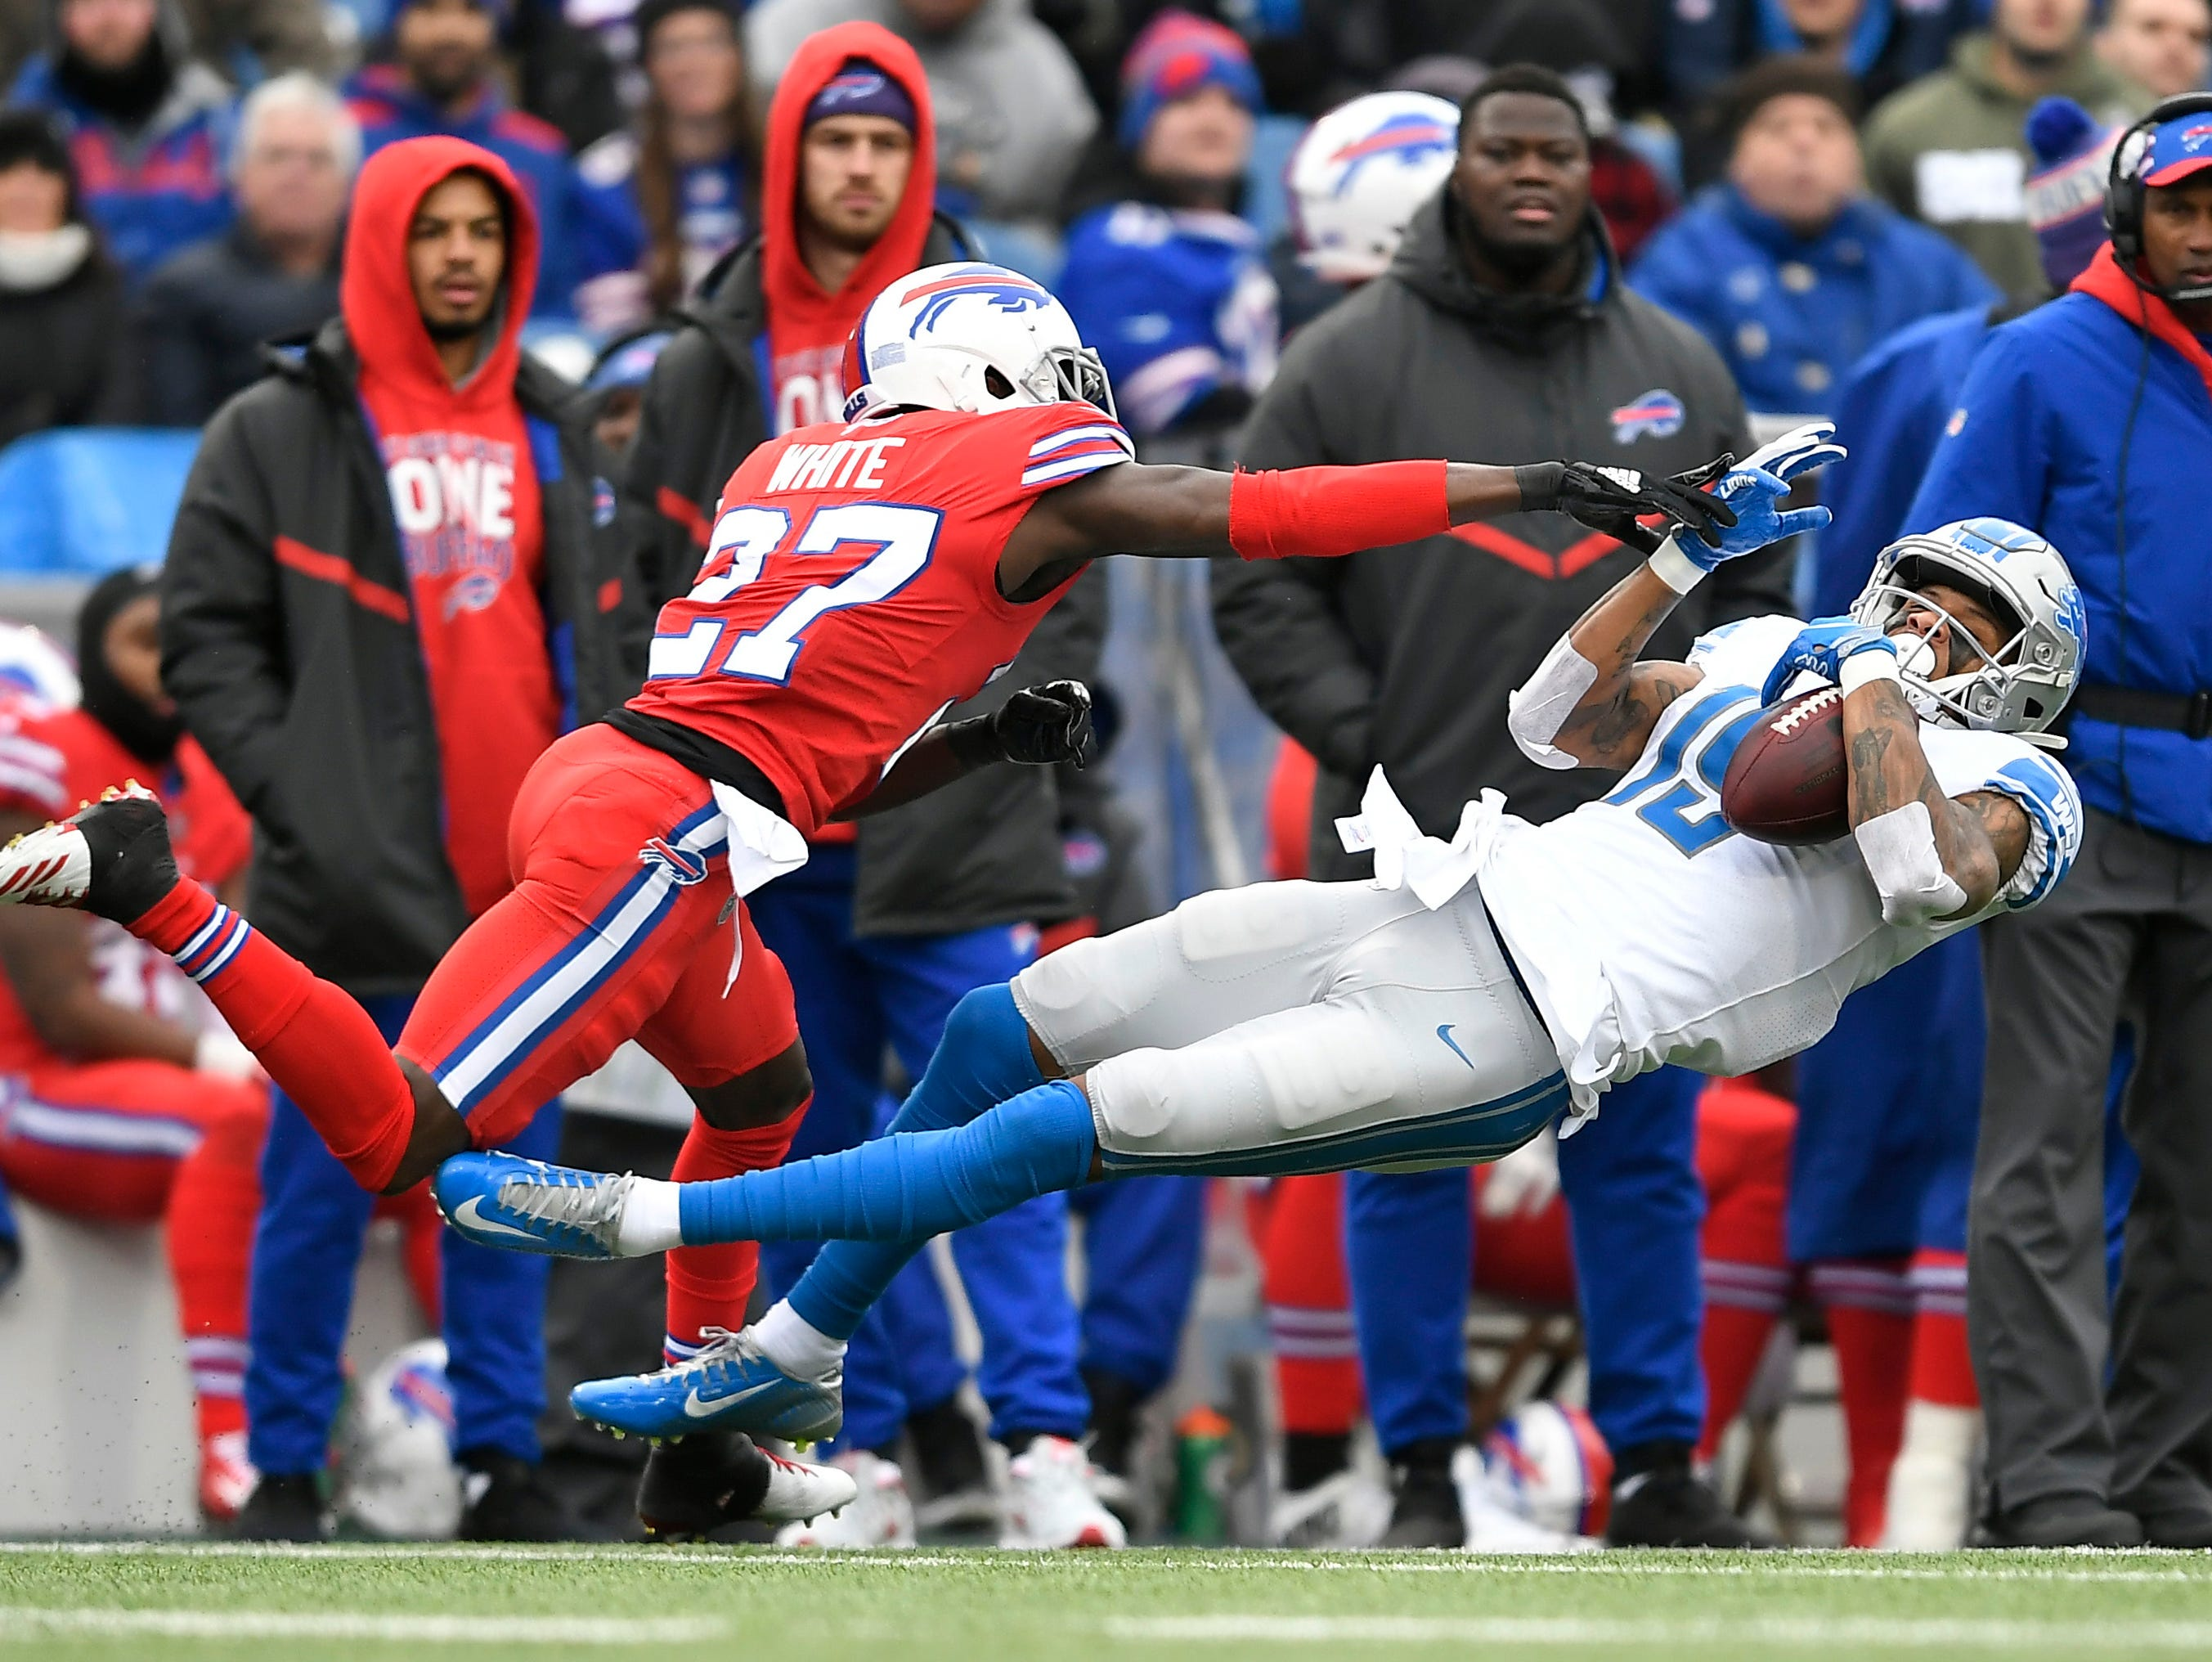 Detroit Lions wide receiver Kenny Golladay (19) catches a pass against Buffalo Bills cornerback Tre'Davious White (27) during the first half.